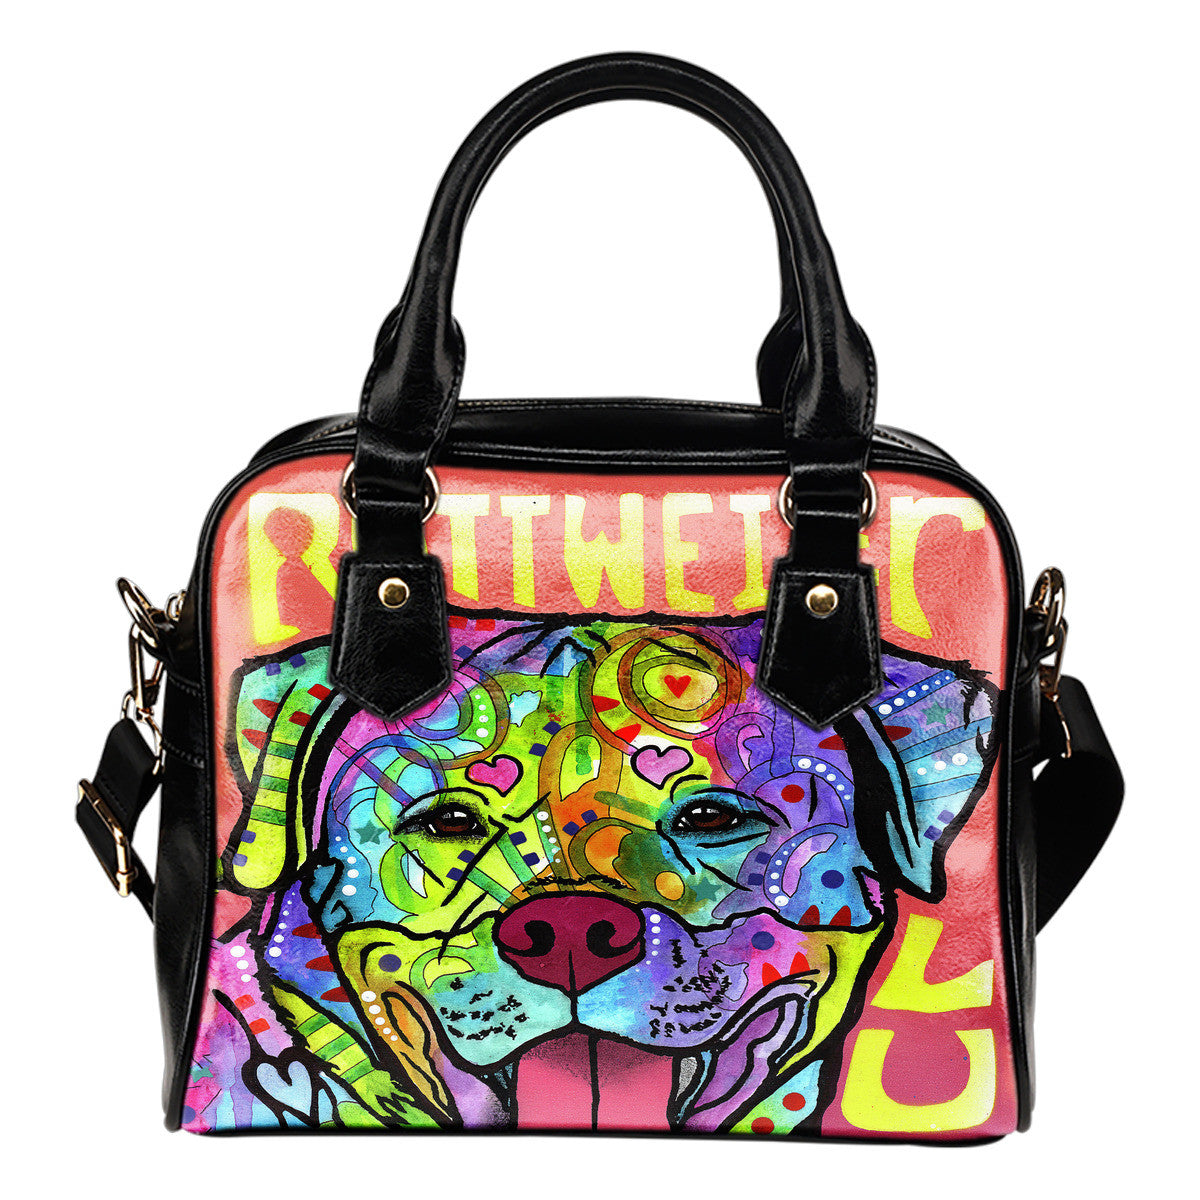 Rottweiler Shoulder Handbags